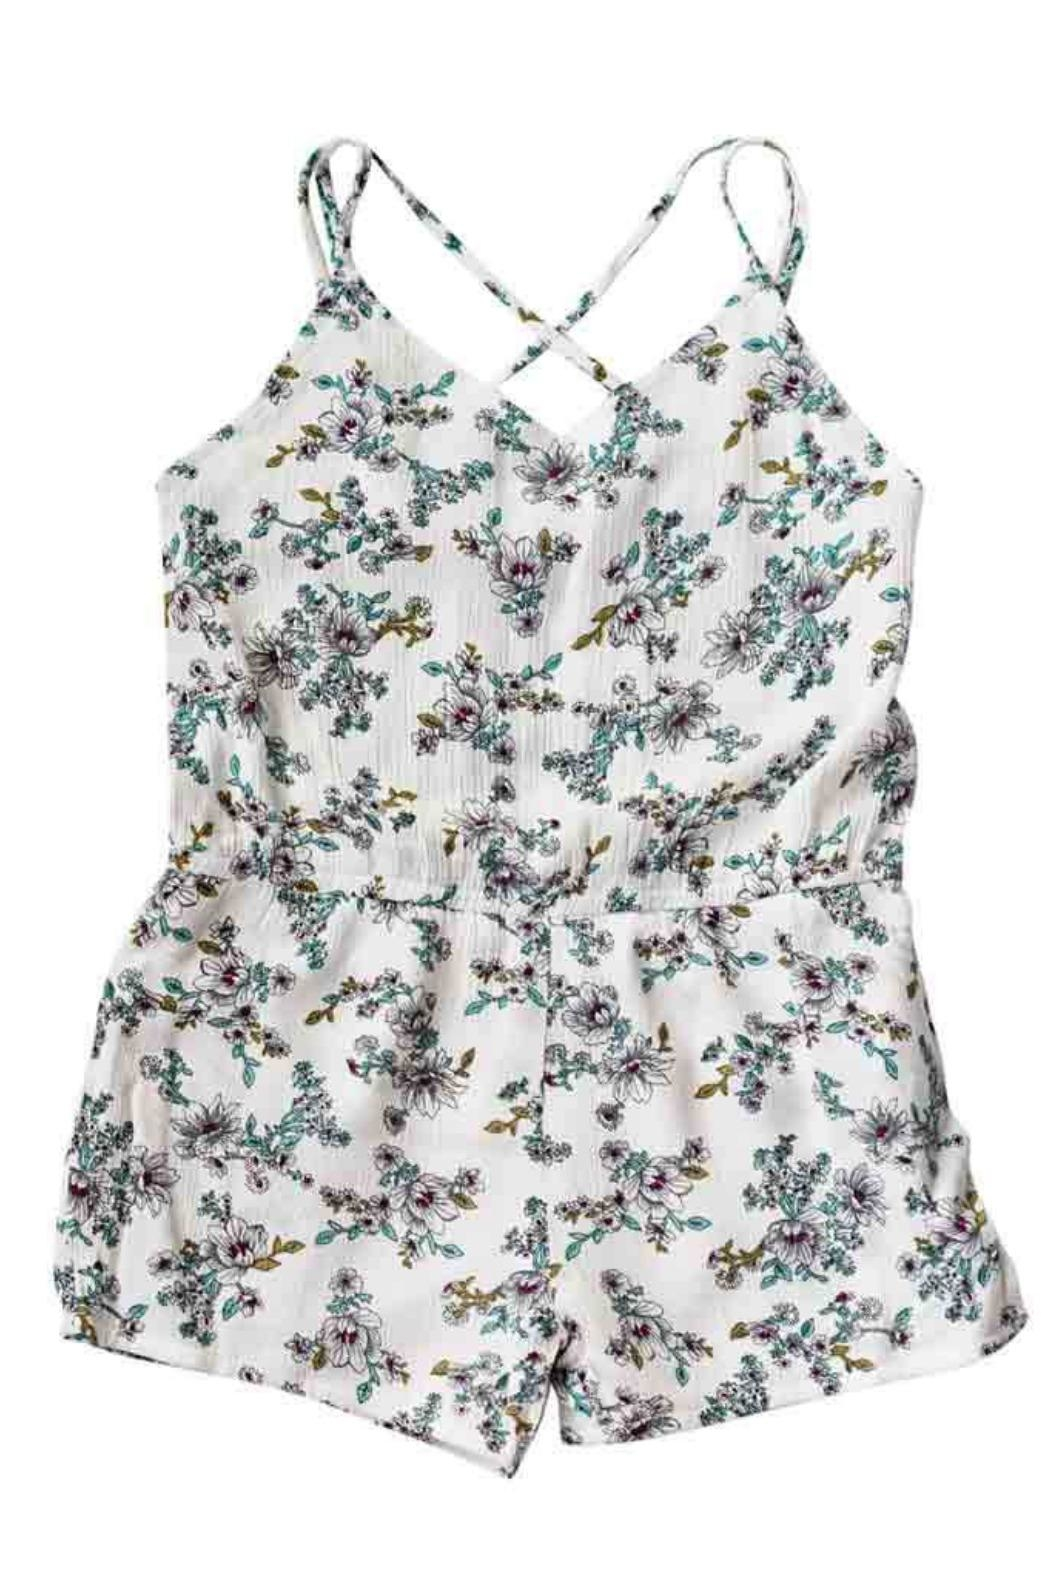 Bailey's Blossoms White Floral Romper - Main Image